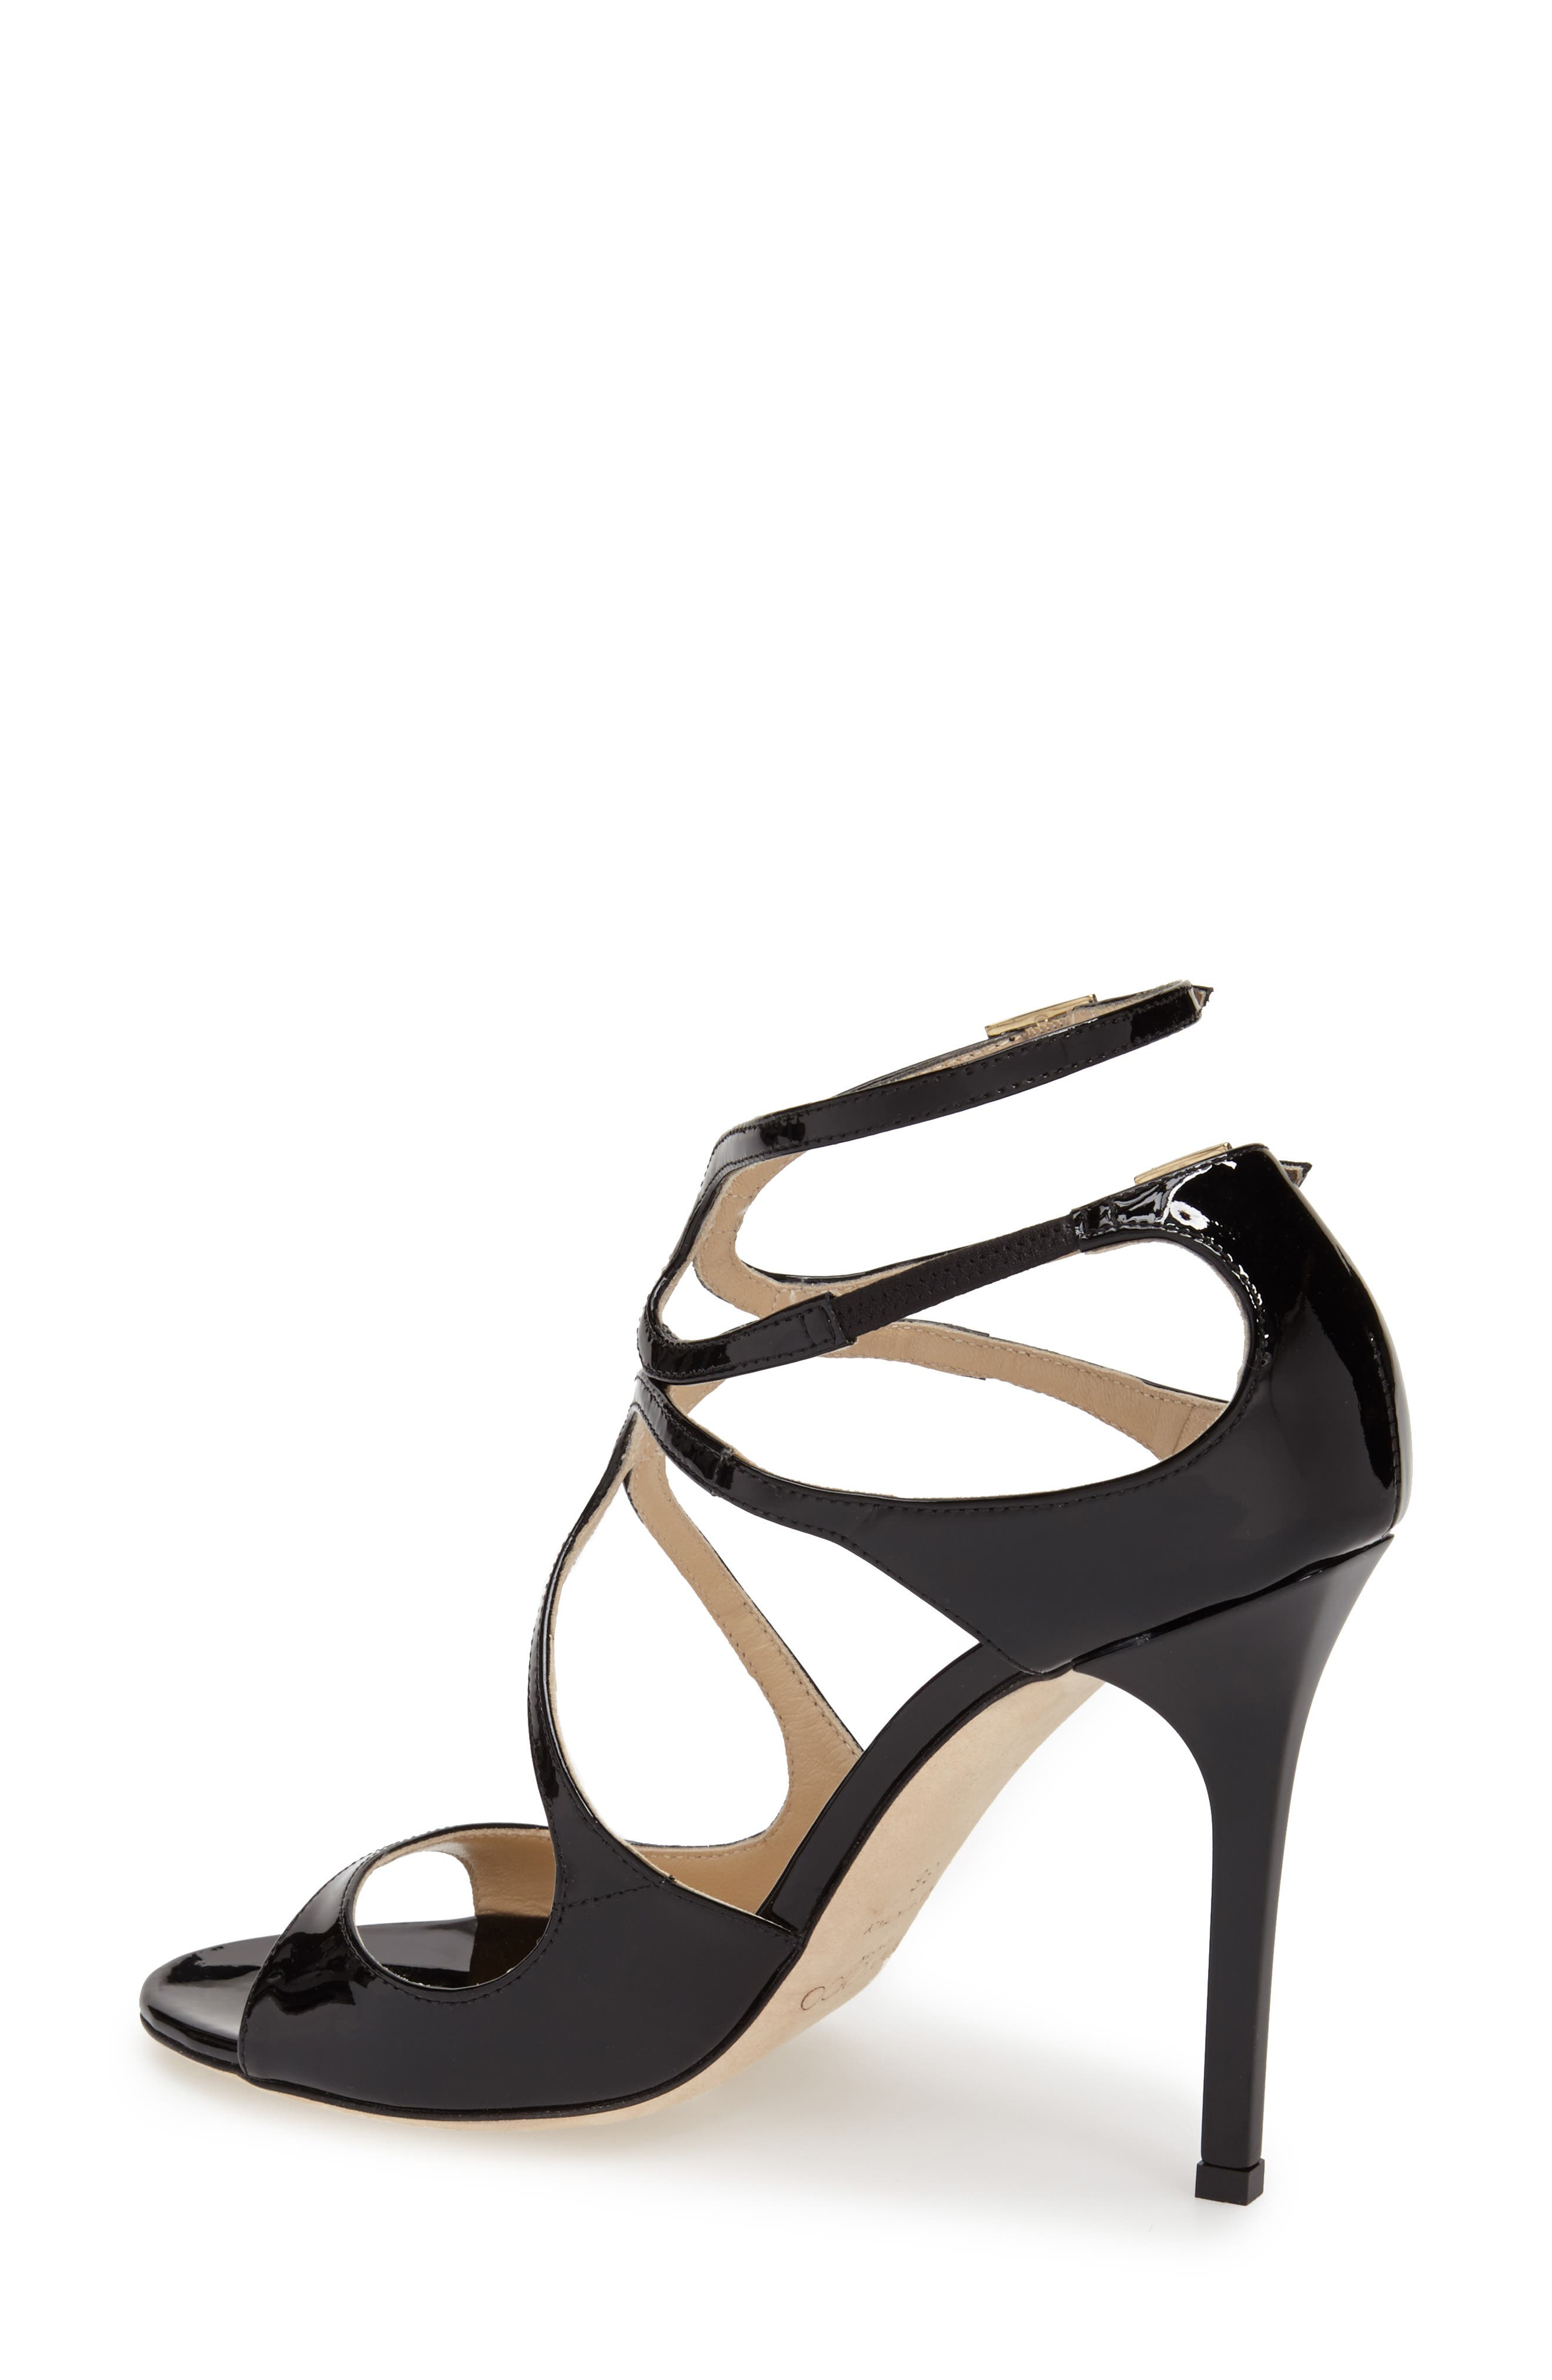 JIMMY CHOO 'Lang' Sandal, Main, color, BLACK PATENT